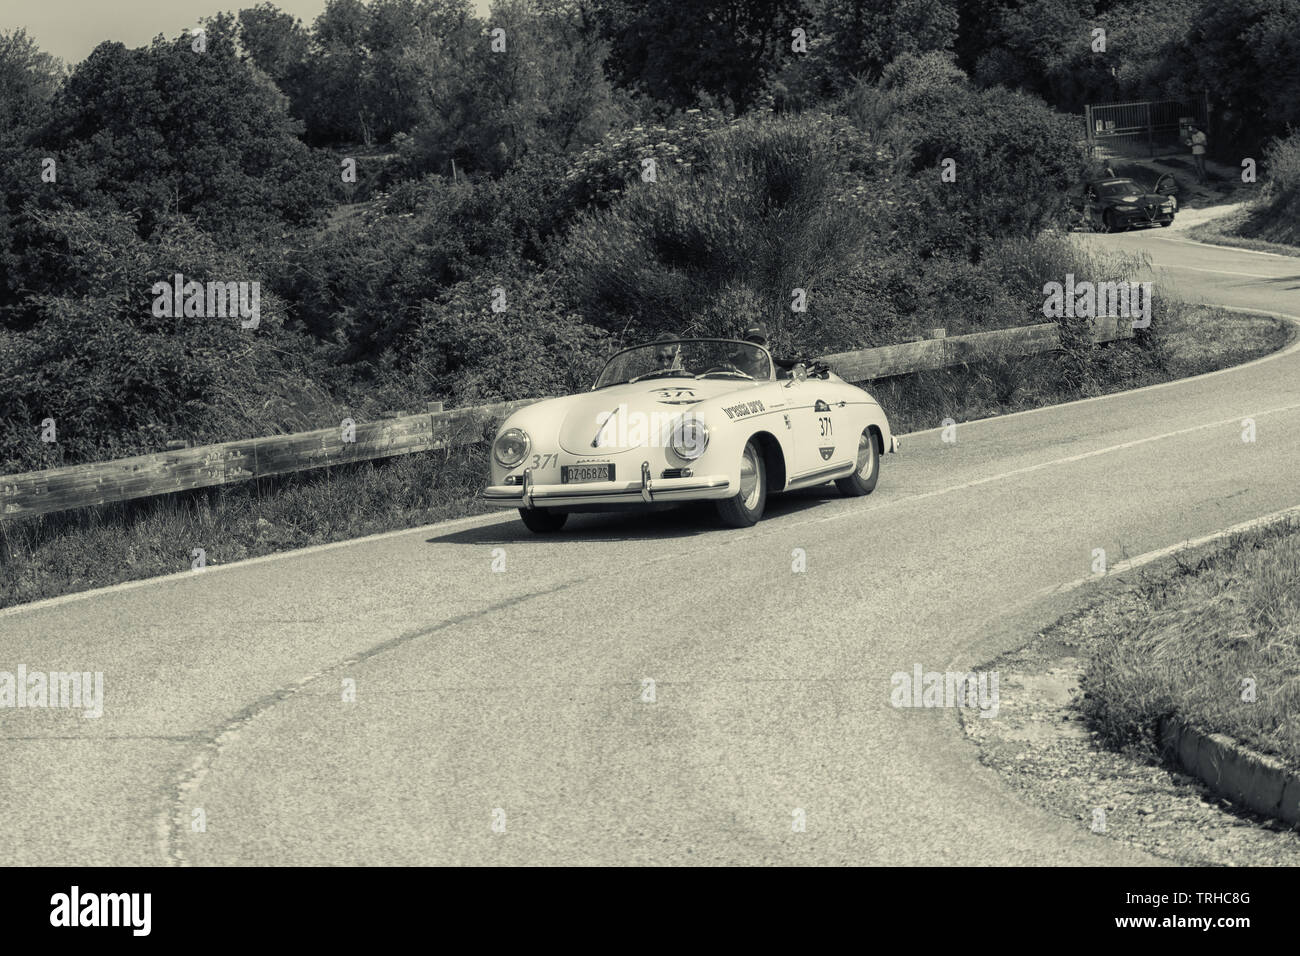 PESARO COLLE SAN BARTOLO , ITALY - MAY 17 - 2018 : PORSCHE 356 1500 SPEEDSTER 1955 on an old racing car in rally Mille Miglia 2018 the famous italian - Stock Image